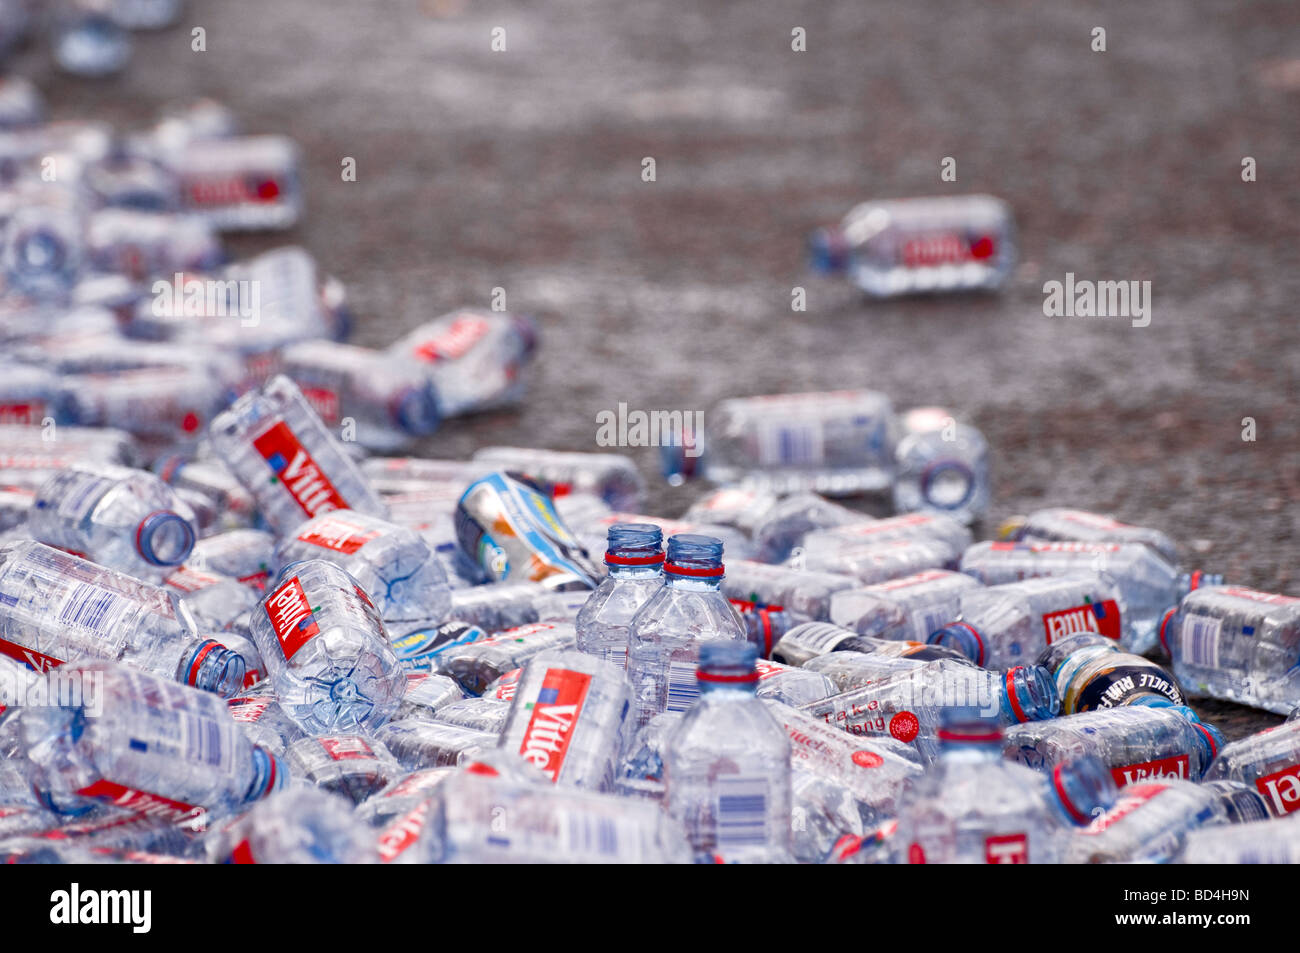 Discarded mineral water bottles after the London Marathon - Stock Image